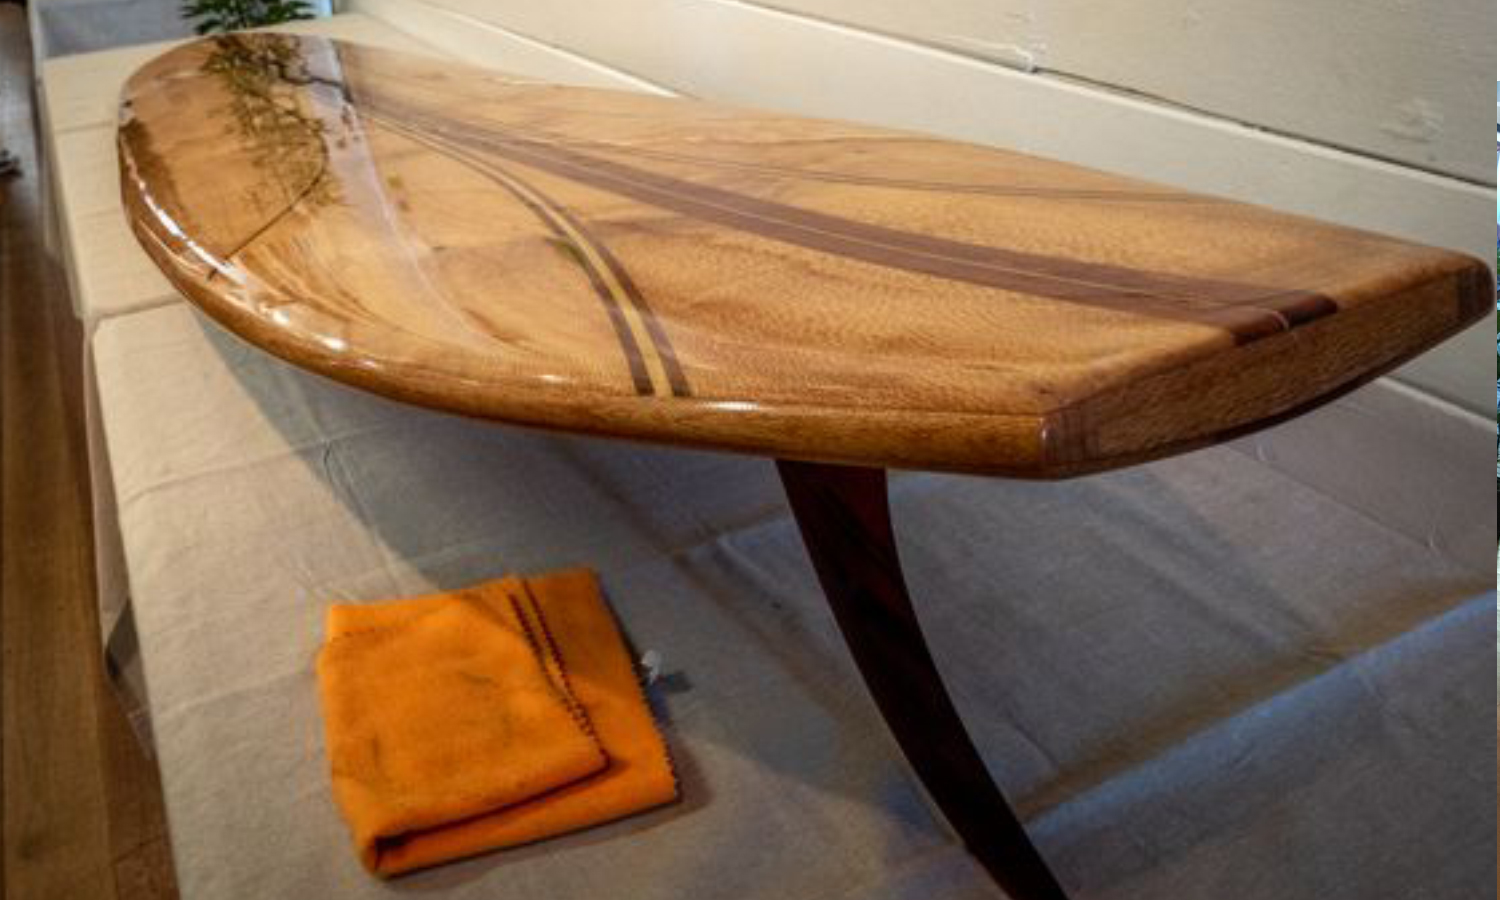 Locally crafted surfboard. Image courtesy of QTT